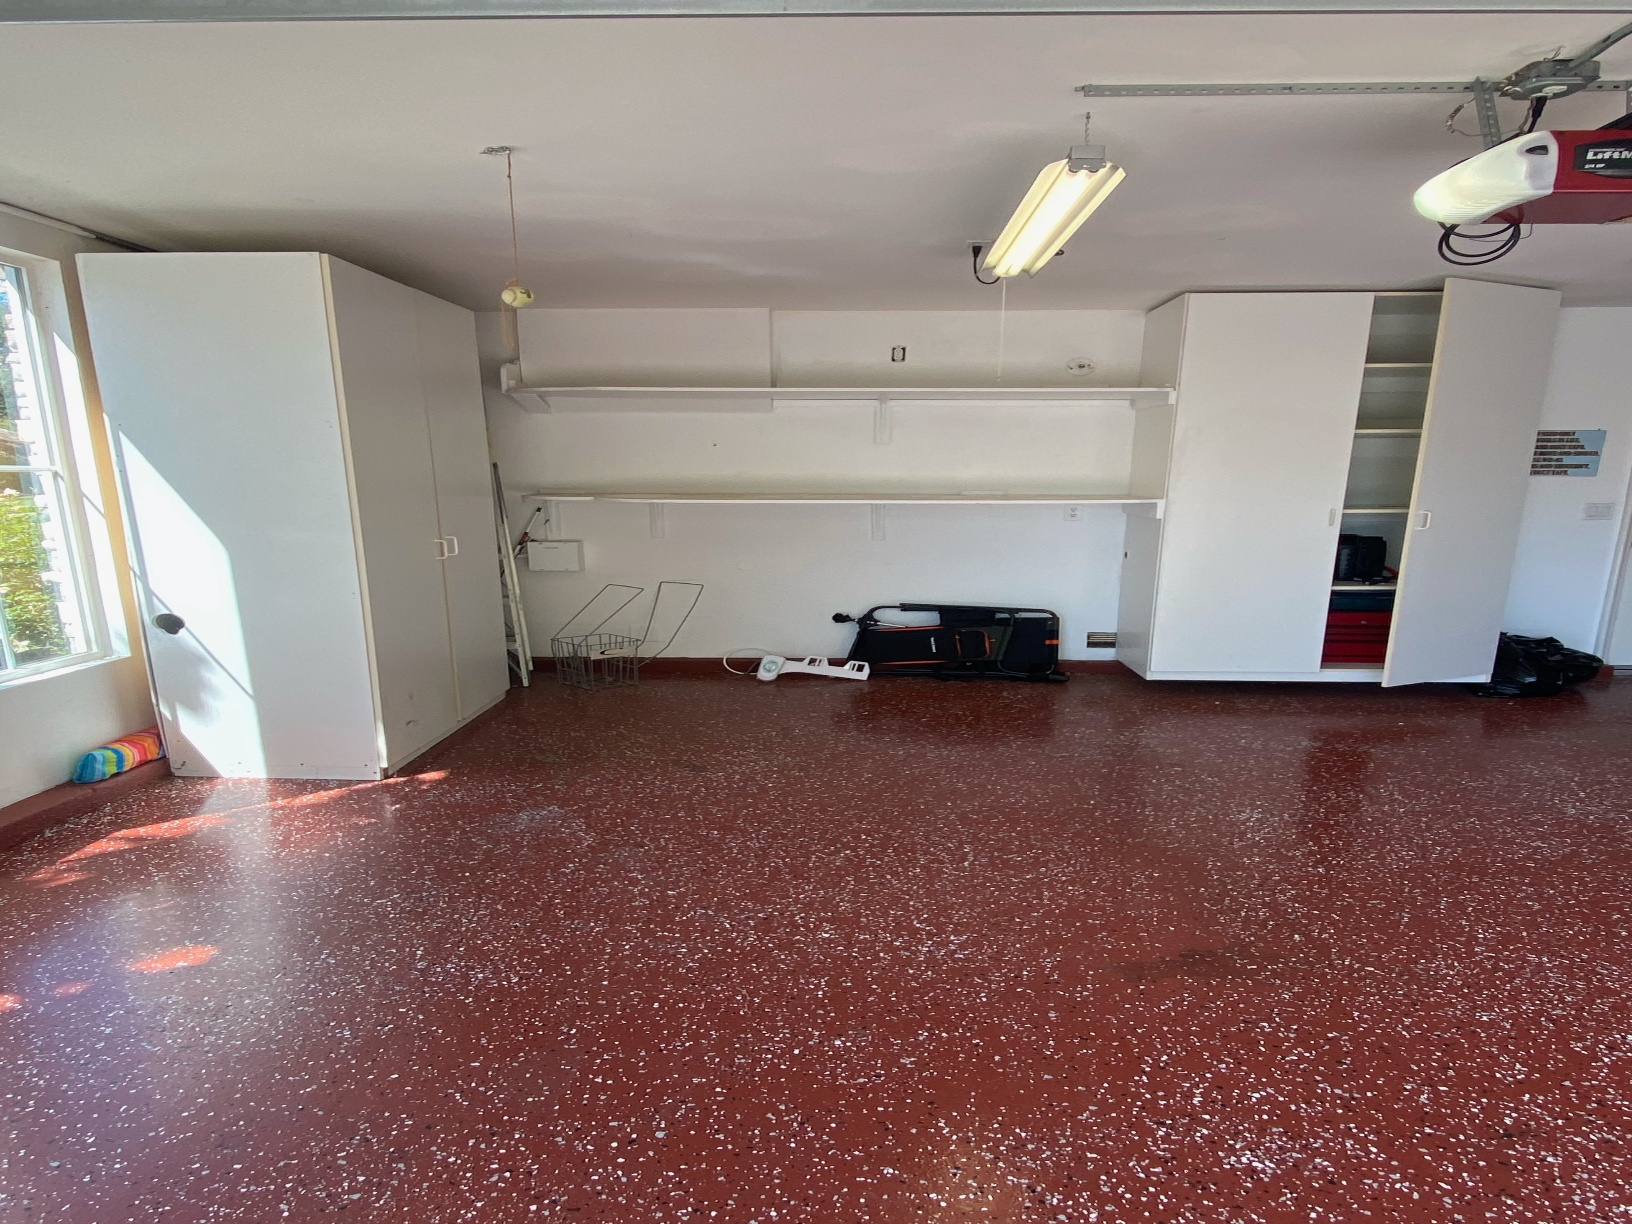 Garage Storage Unit Removal in Trabuco Canyon, CA - Before Photo